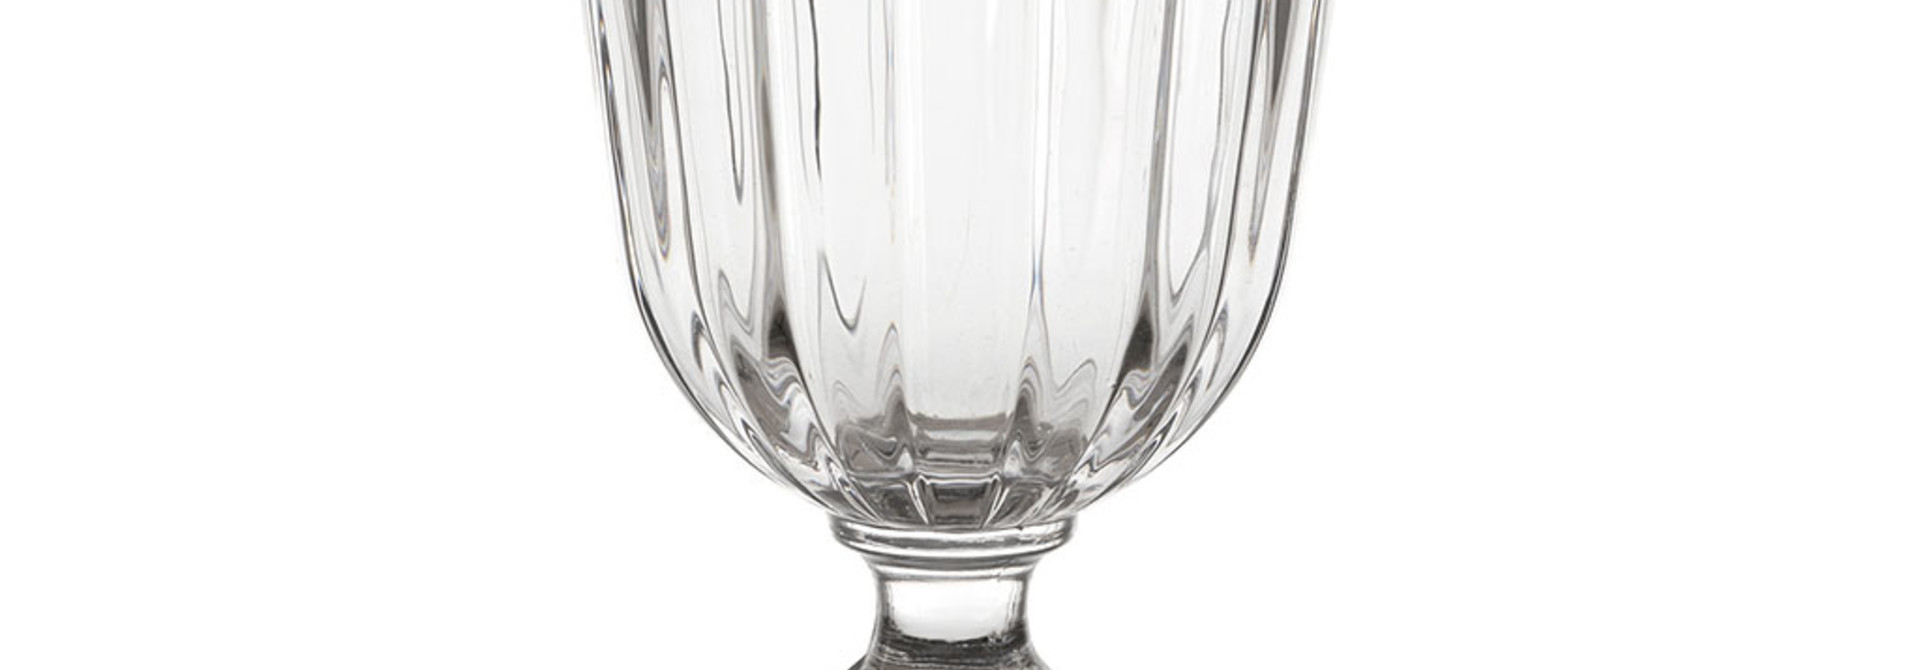 Wine Glass - Retro Chic